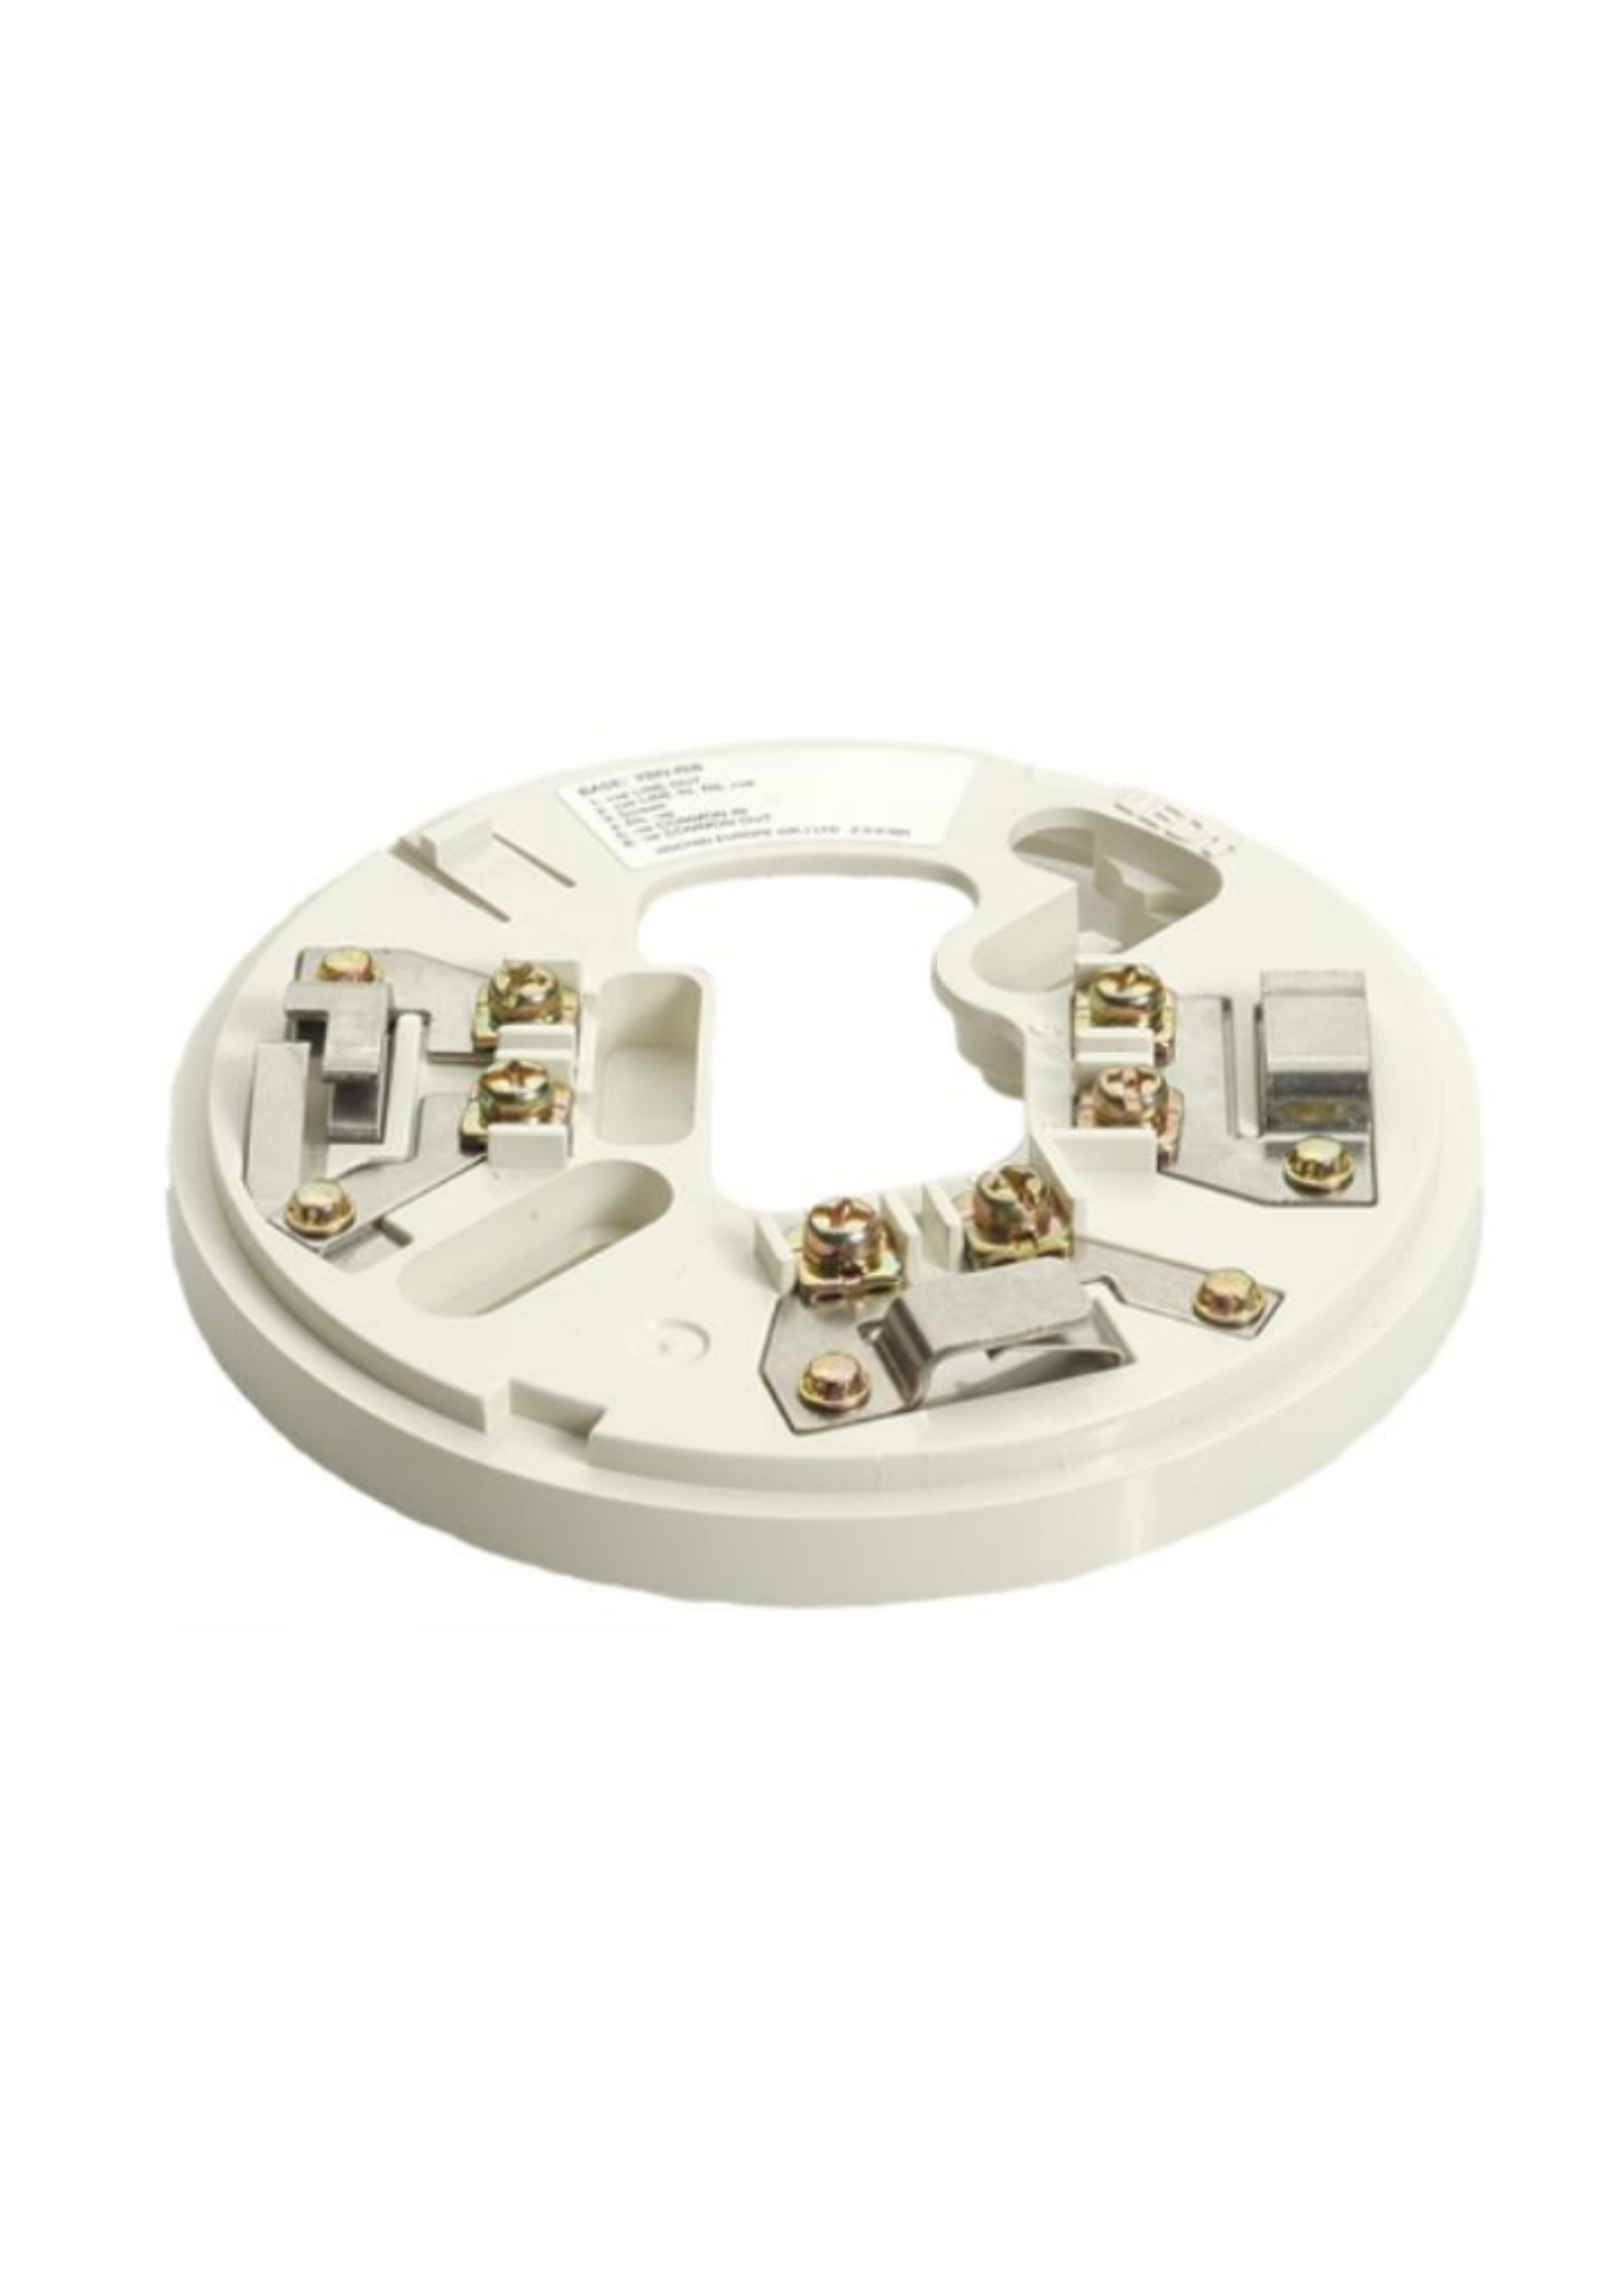 Conventional 2 Wire Base - white 1226200-20